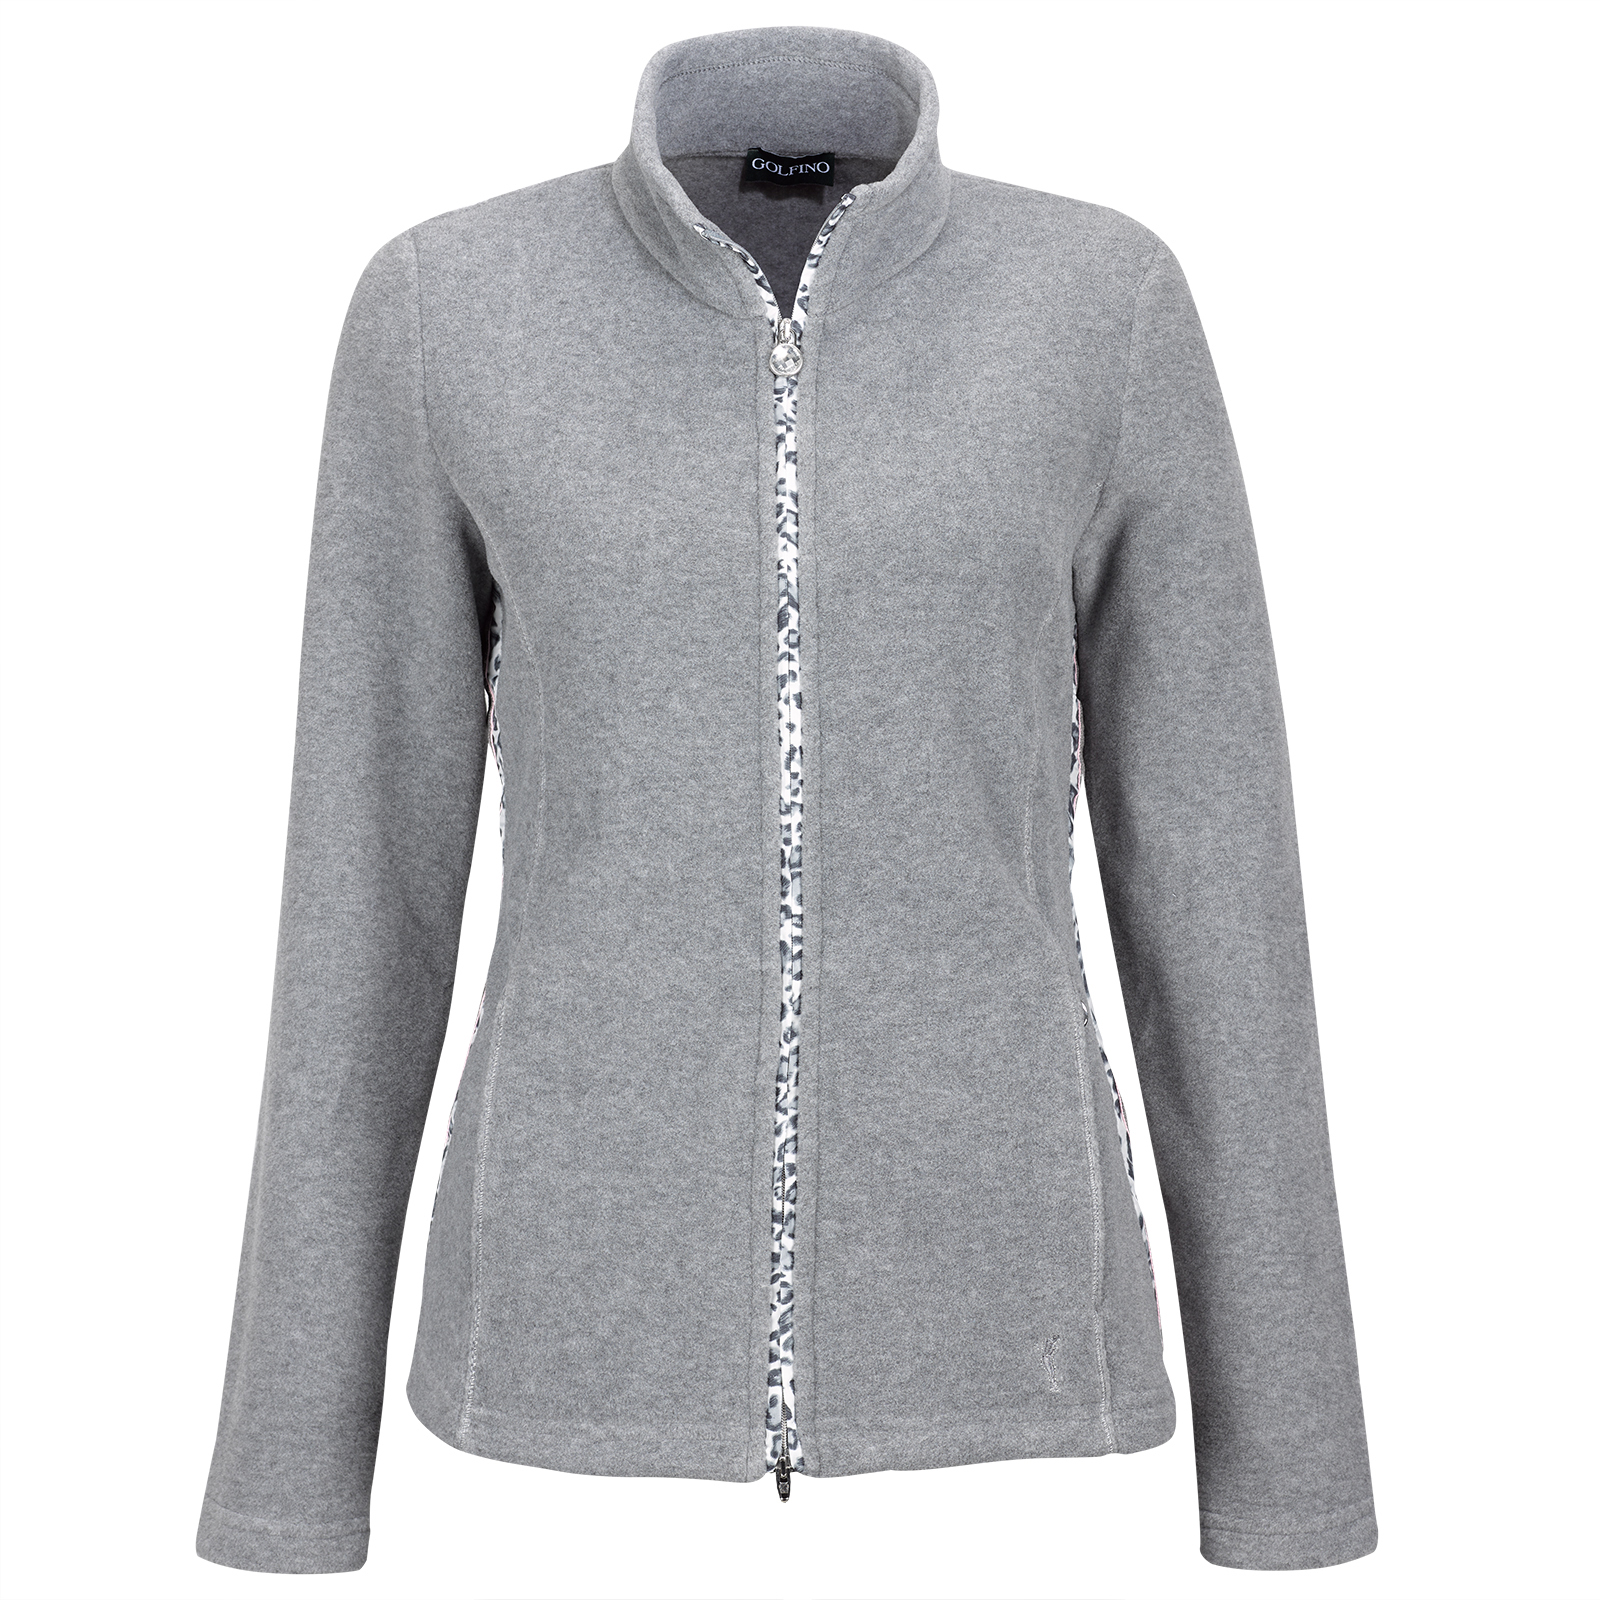 Damen Fleece Golfjacke Cold Protection im Leoparden Look